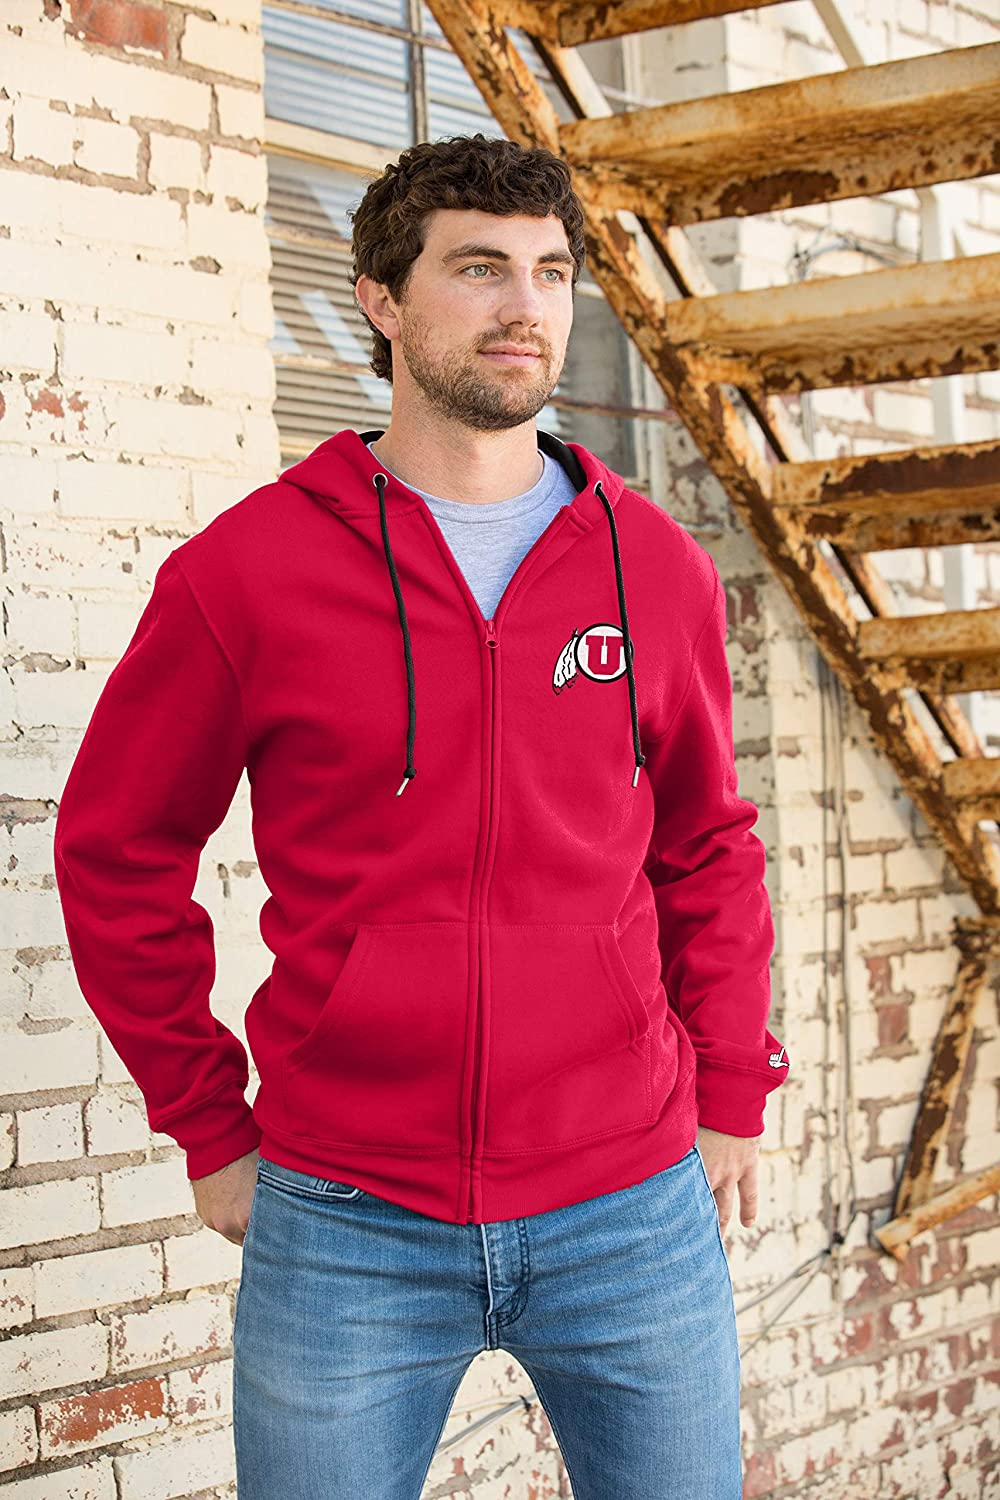 Top of the World Mens Zip Up Hoodie Sweatshirt Team Applique Embroidered Icon